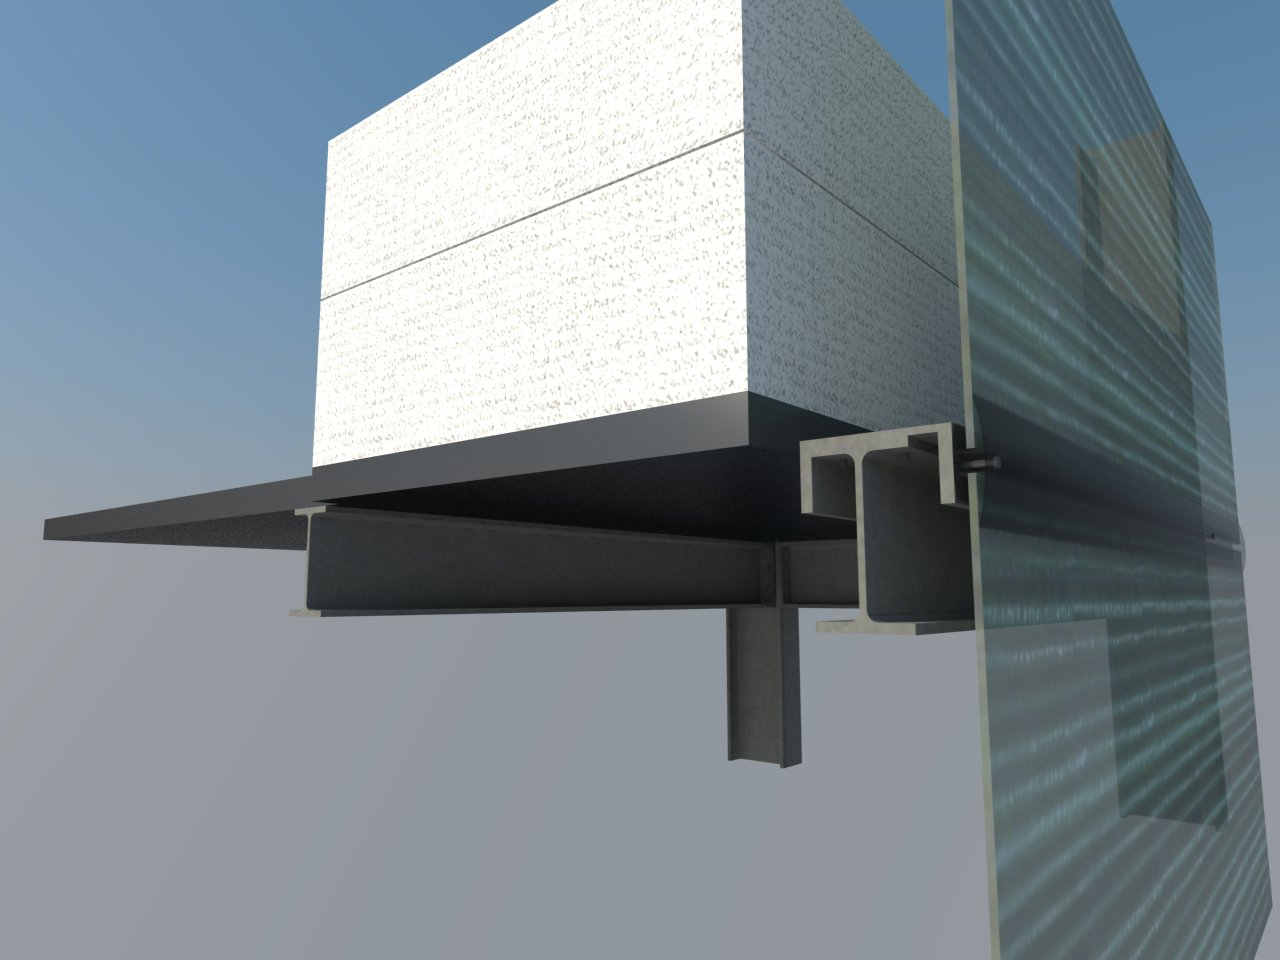 3D Visualization of the Facade Detail